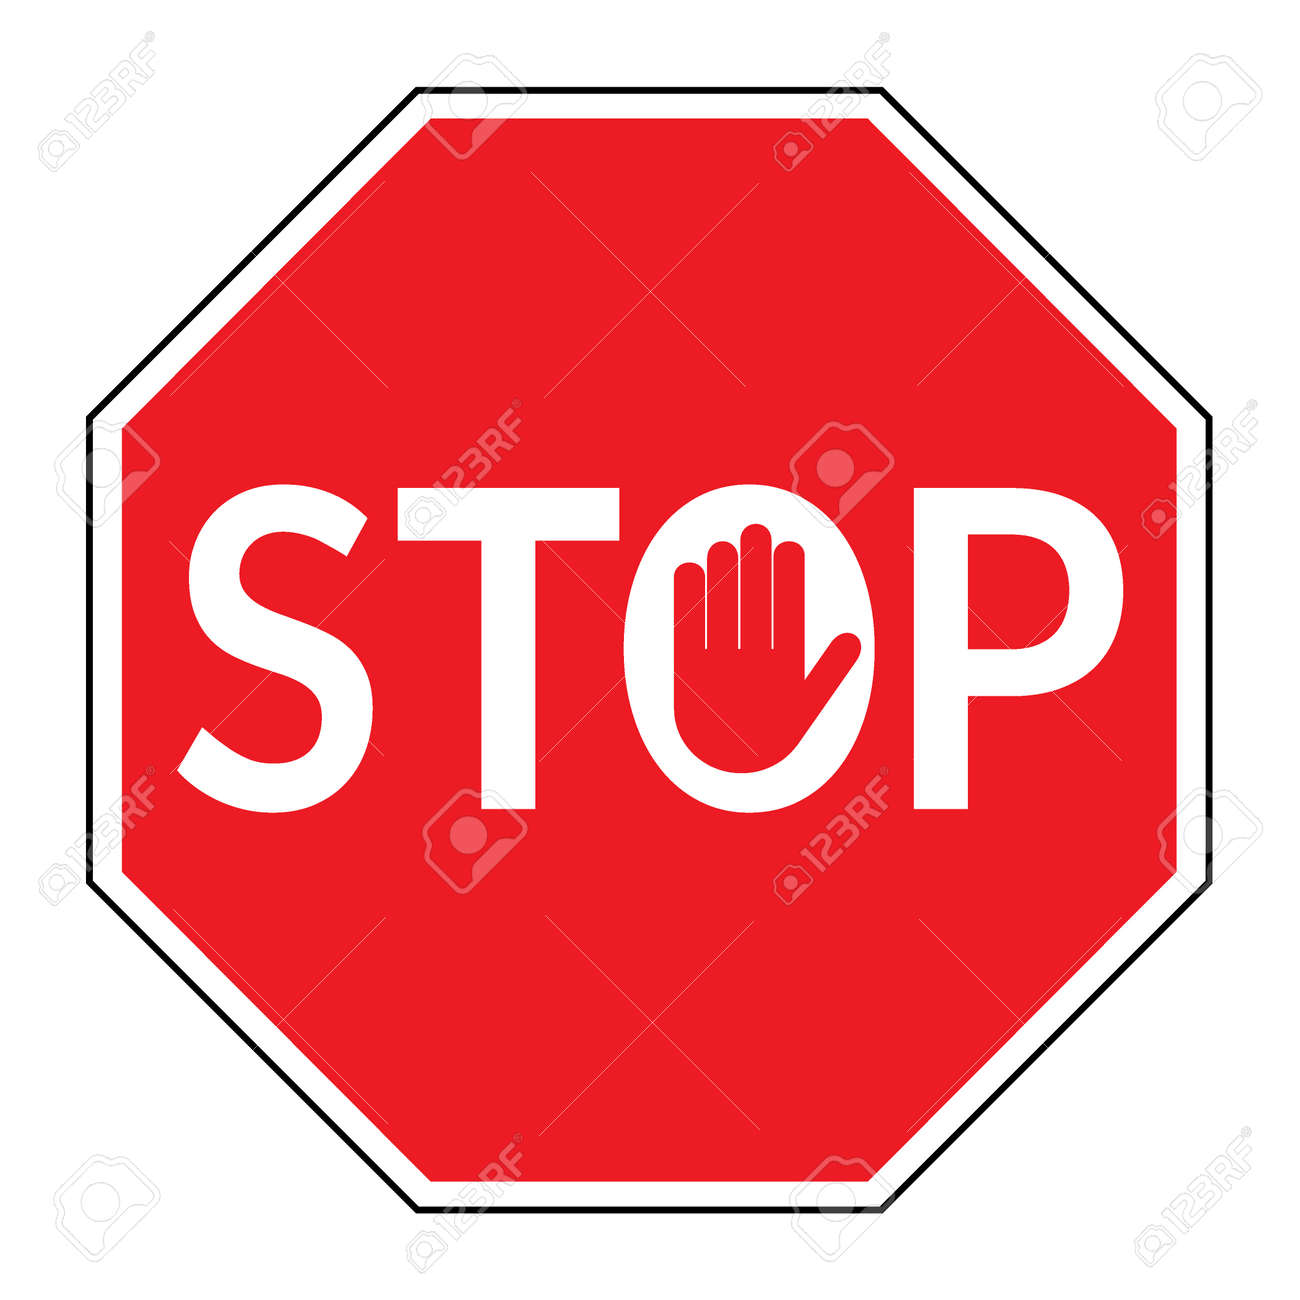 Traffic signs stock photos royalty free business images stop sign traffic stop sign isolated on white background red octagonal stop sign for biocorpaavc